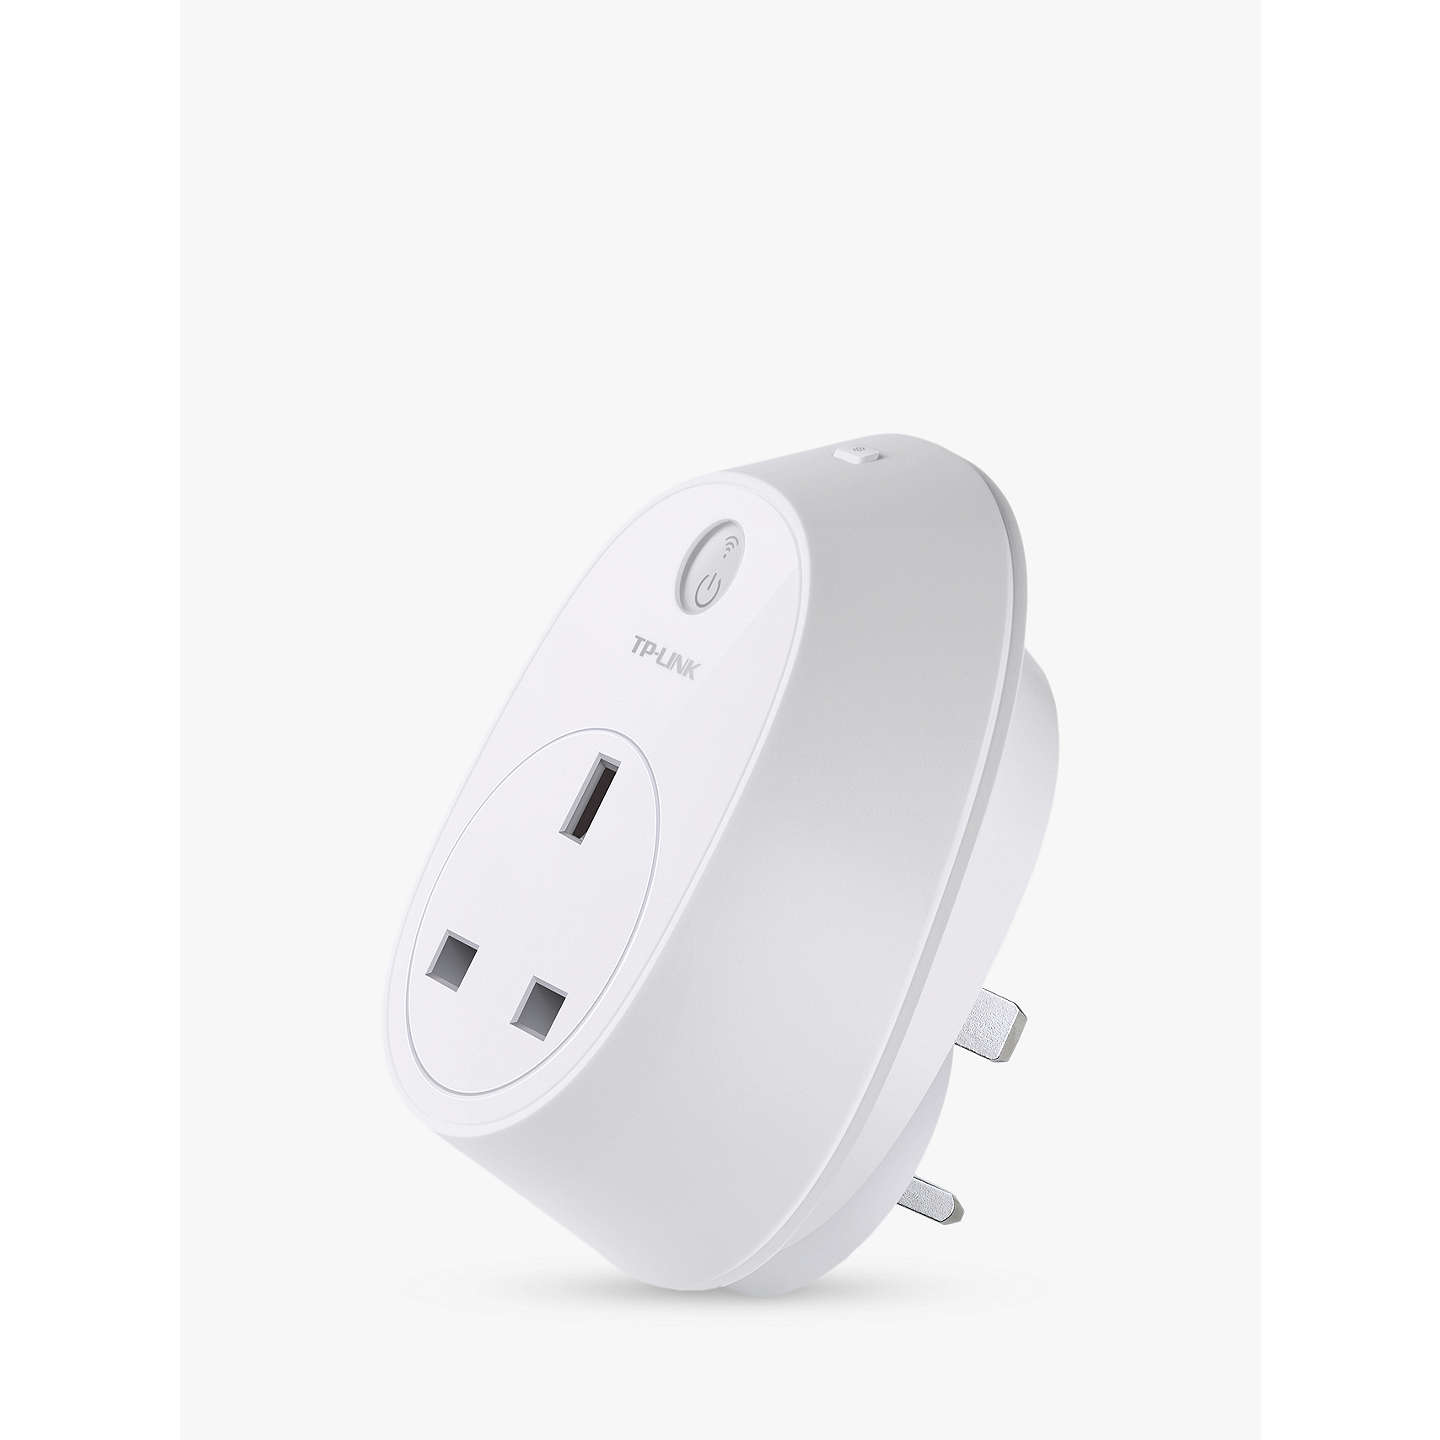 BuyTP-LINK HS110 Wi-Fi Smart Plug with Energy Monitoring Online at johnlewis.com